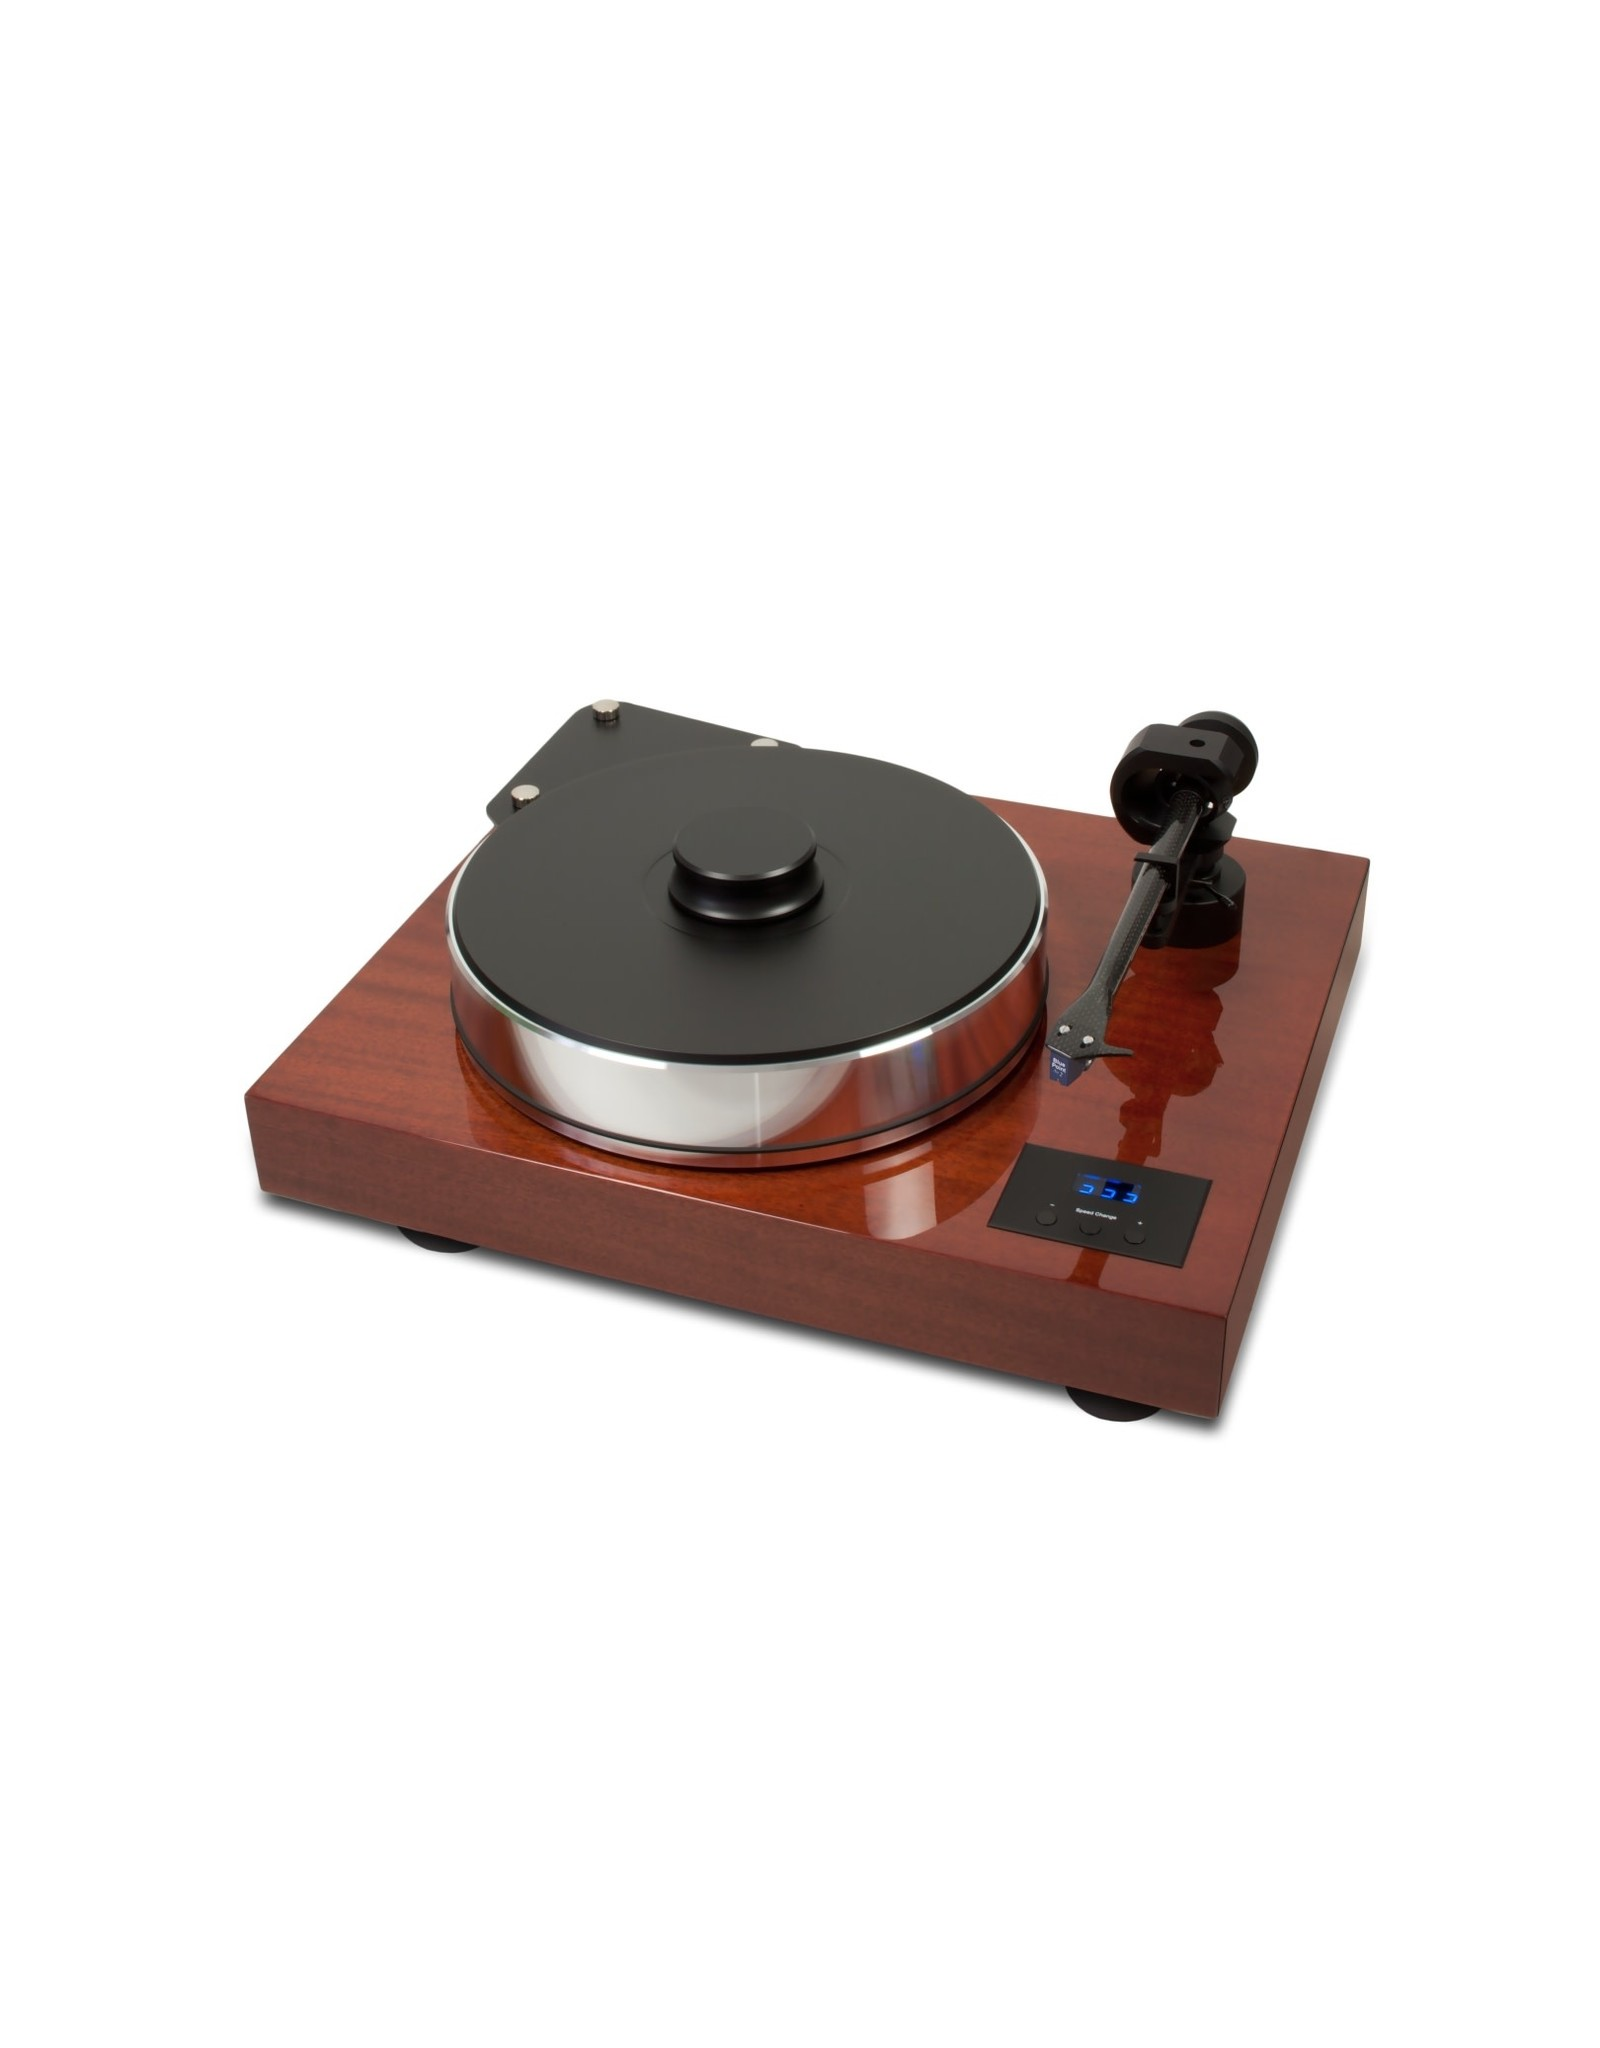 Pro-Ject Pro-Ject Xtension 10 Turntable